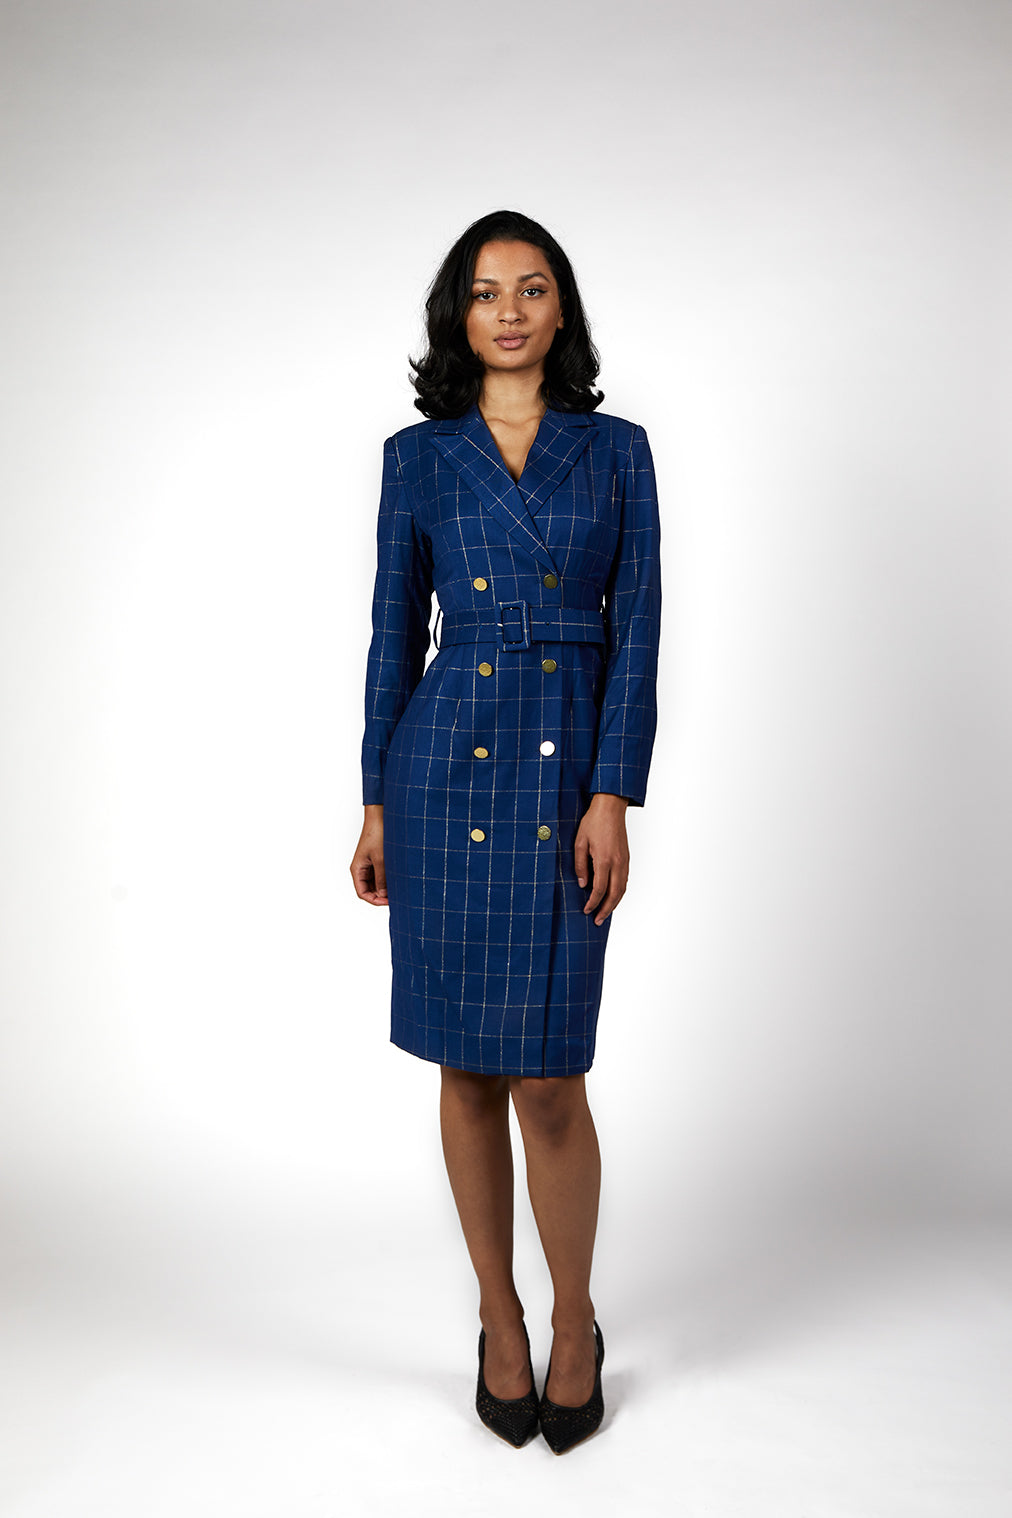 Meliora Pinstripes Blue Presidential Blazer Dress